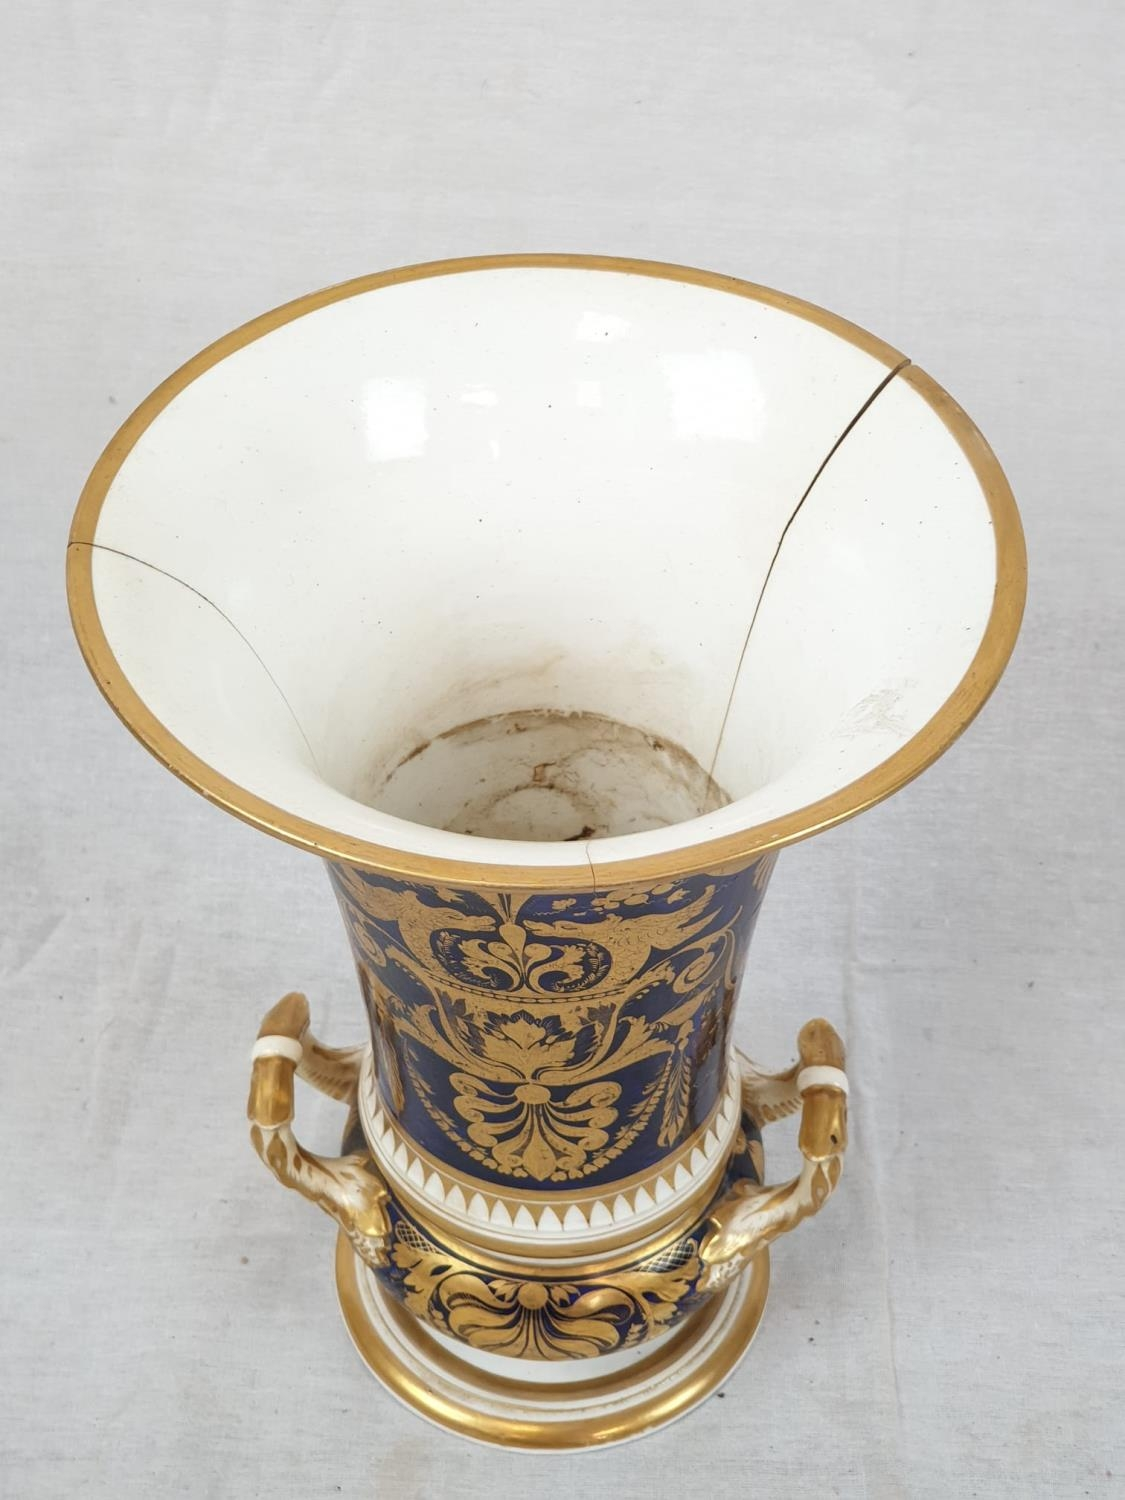 Royal Derby (Crown): In Spain Vase. Spanish 1830. Beautifully Decorated but damaged firing cracks. - Image 3 of 11